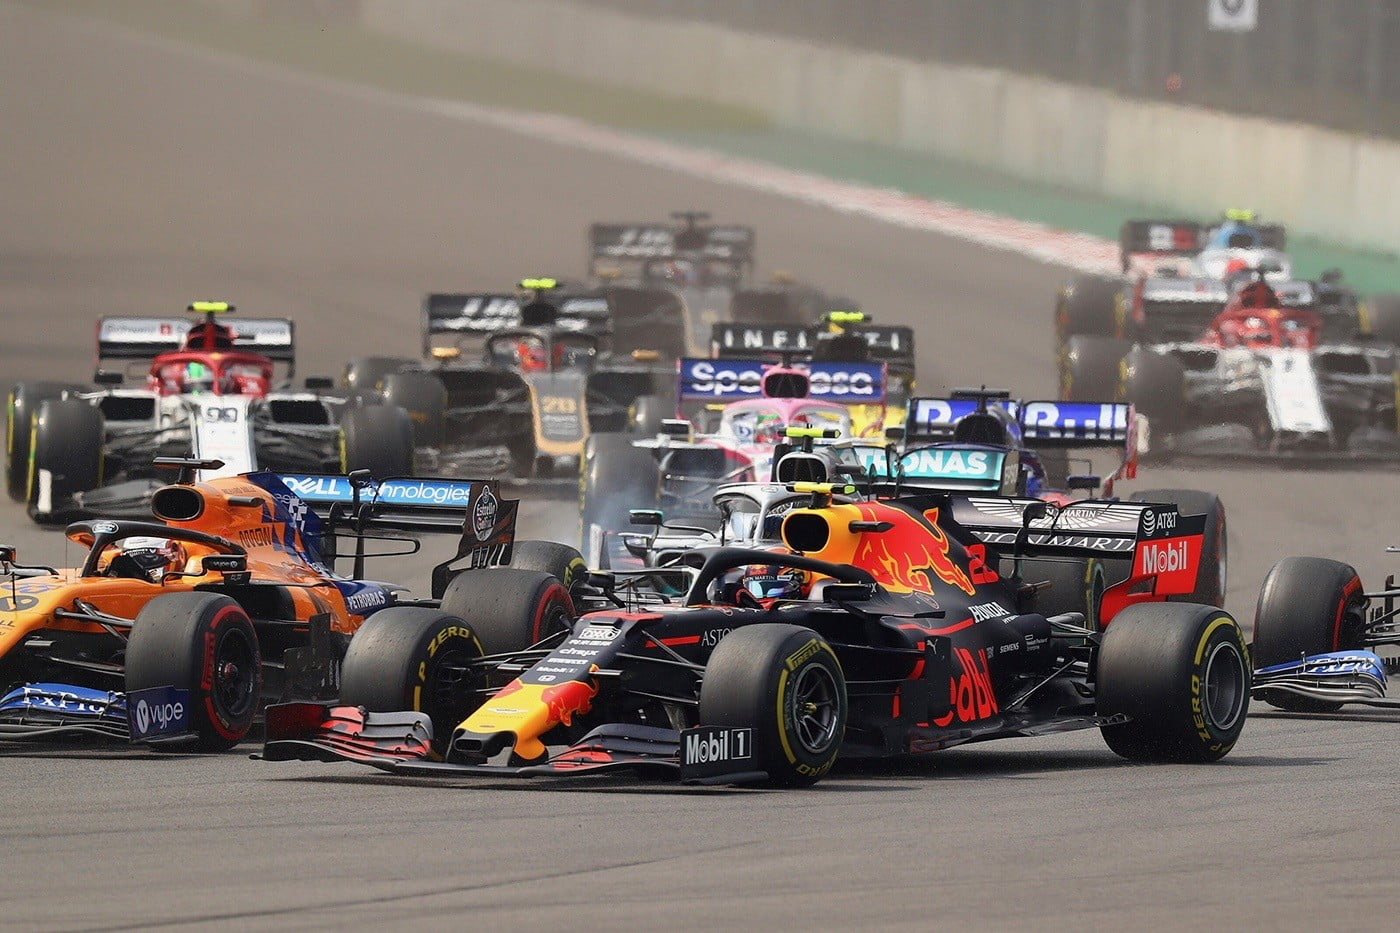 Formula One is adding cost caps in 2021, so teams are spending even more for 2020